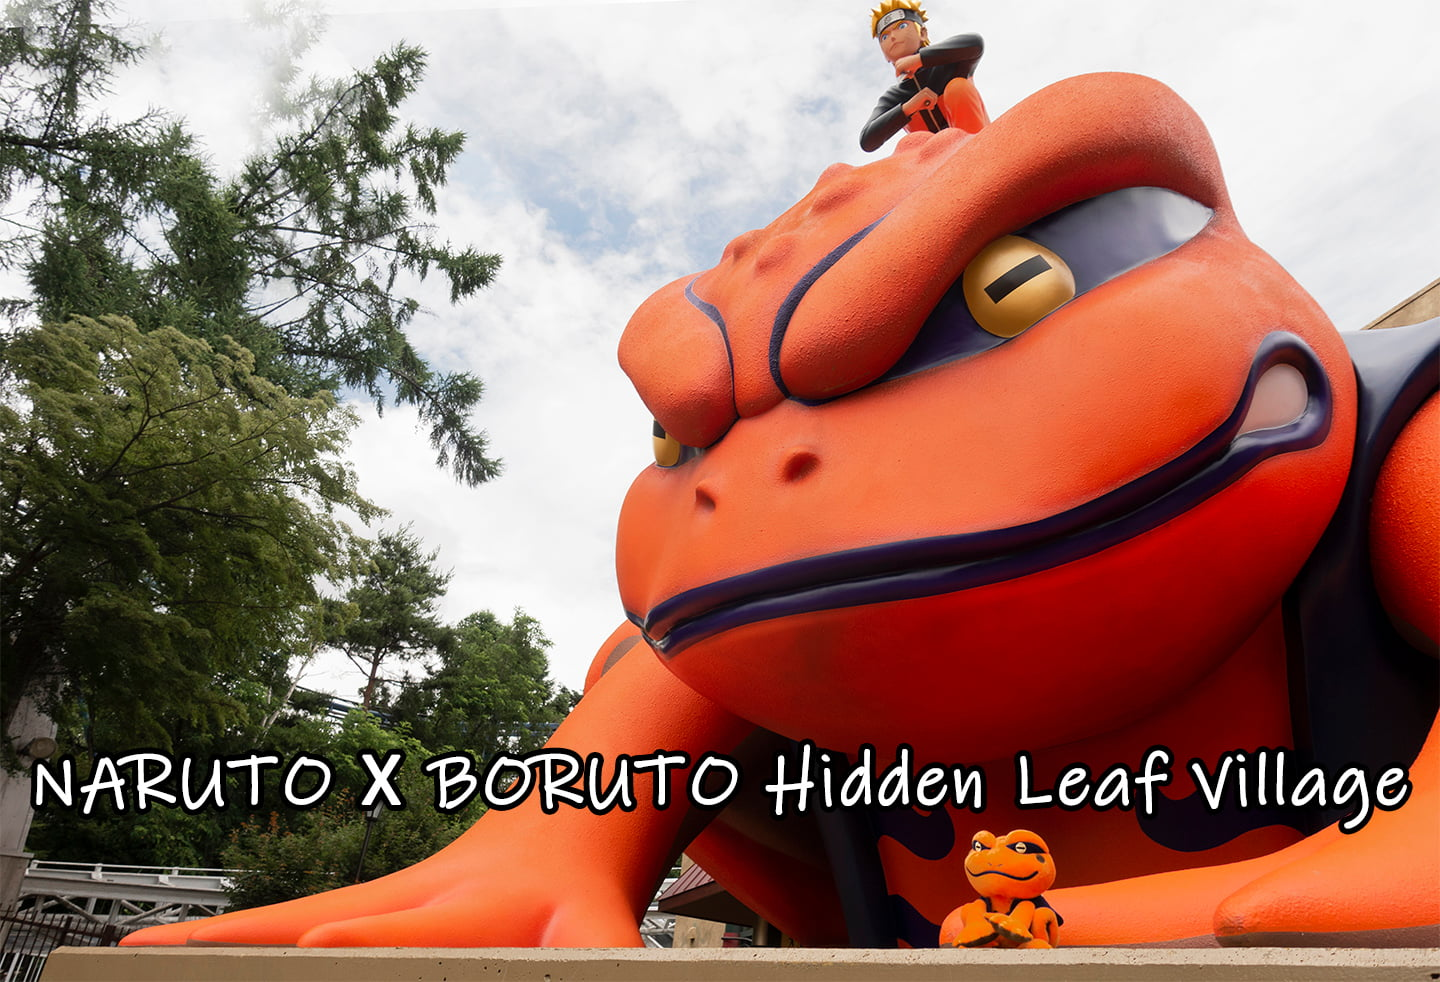 Journey to Hidden Leaf Village in Fuji-Q, a must visit for Naruto fans